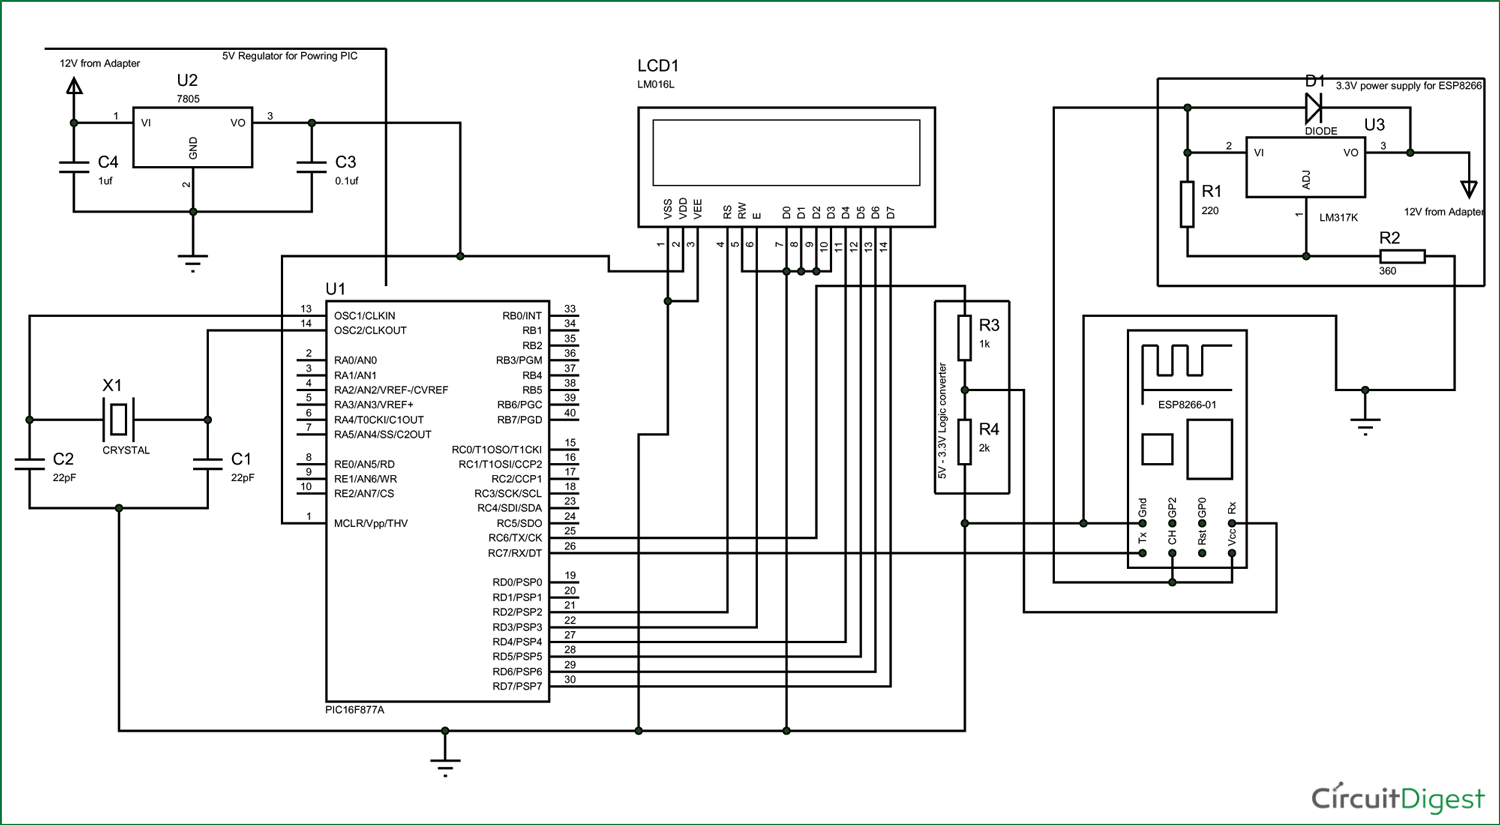 Interfacing Pic Microcontroller With Esp8266 Wifi Module Introduction To 16f877 Circuit Diagram For Pic16f877a